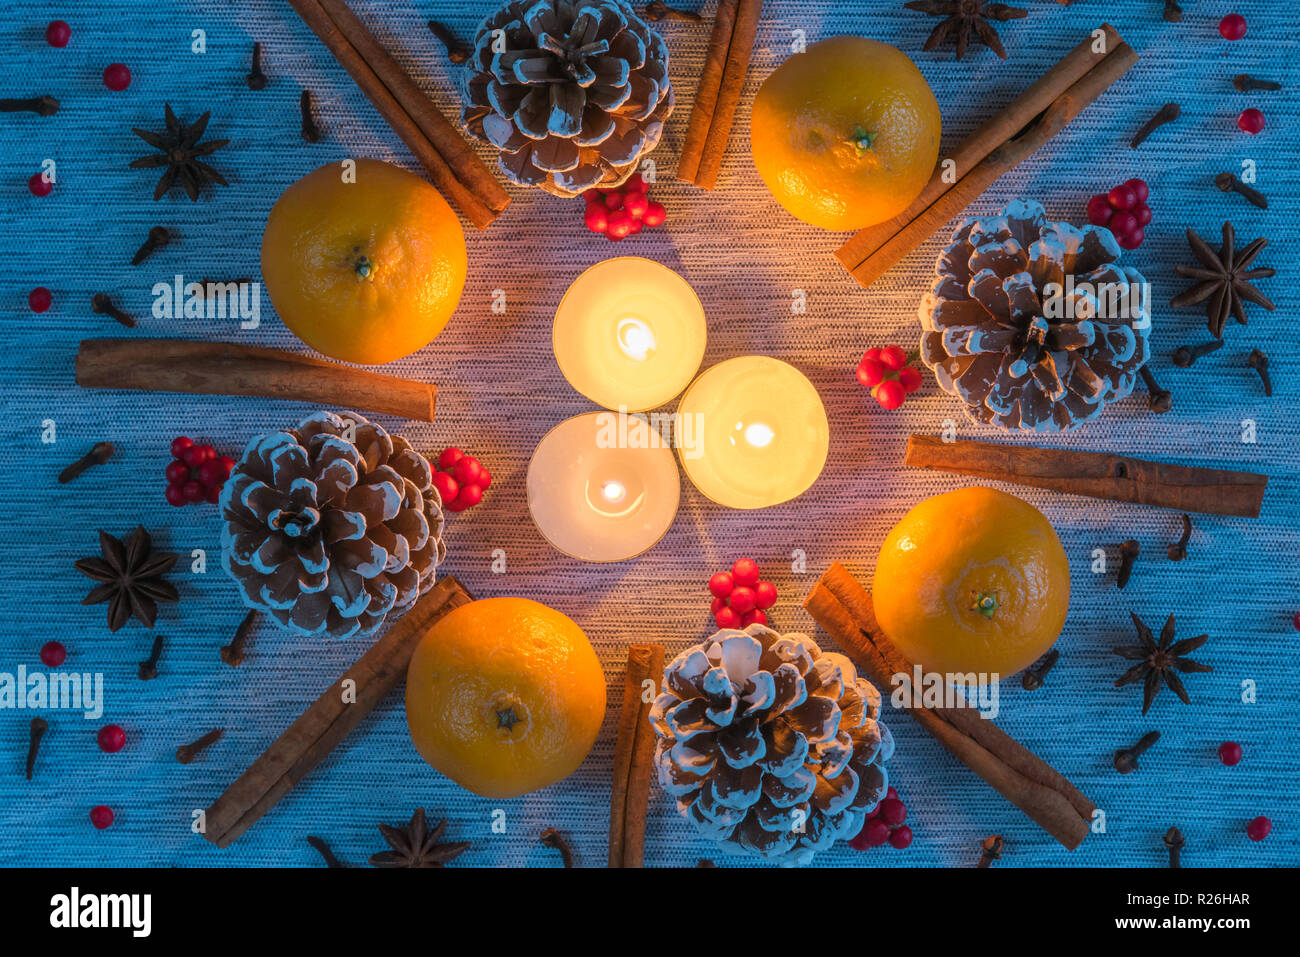 Christmas arrangement of candles surrounded by wreath of pinecones, oranges, cinnamon sticks - Stock Image